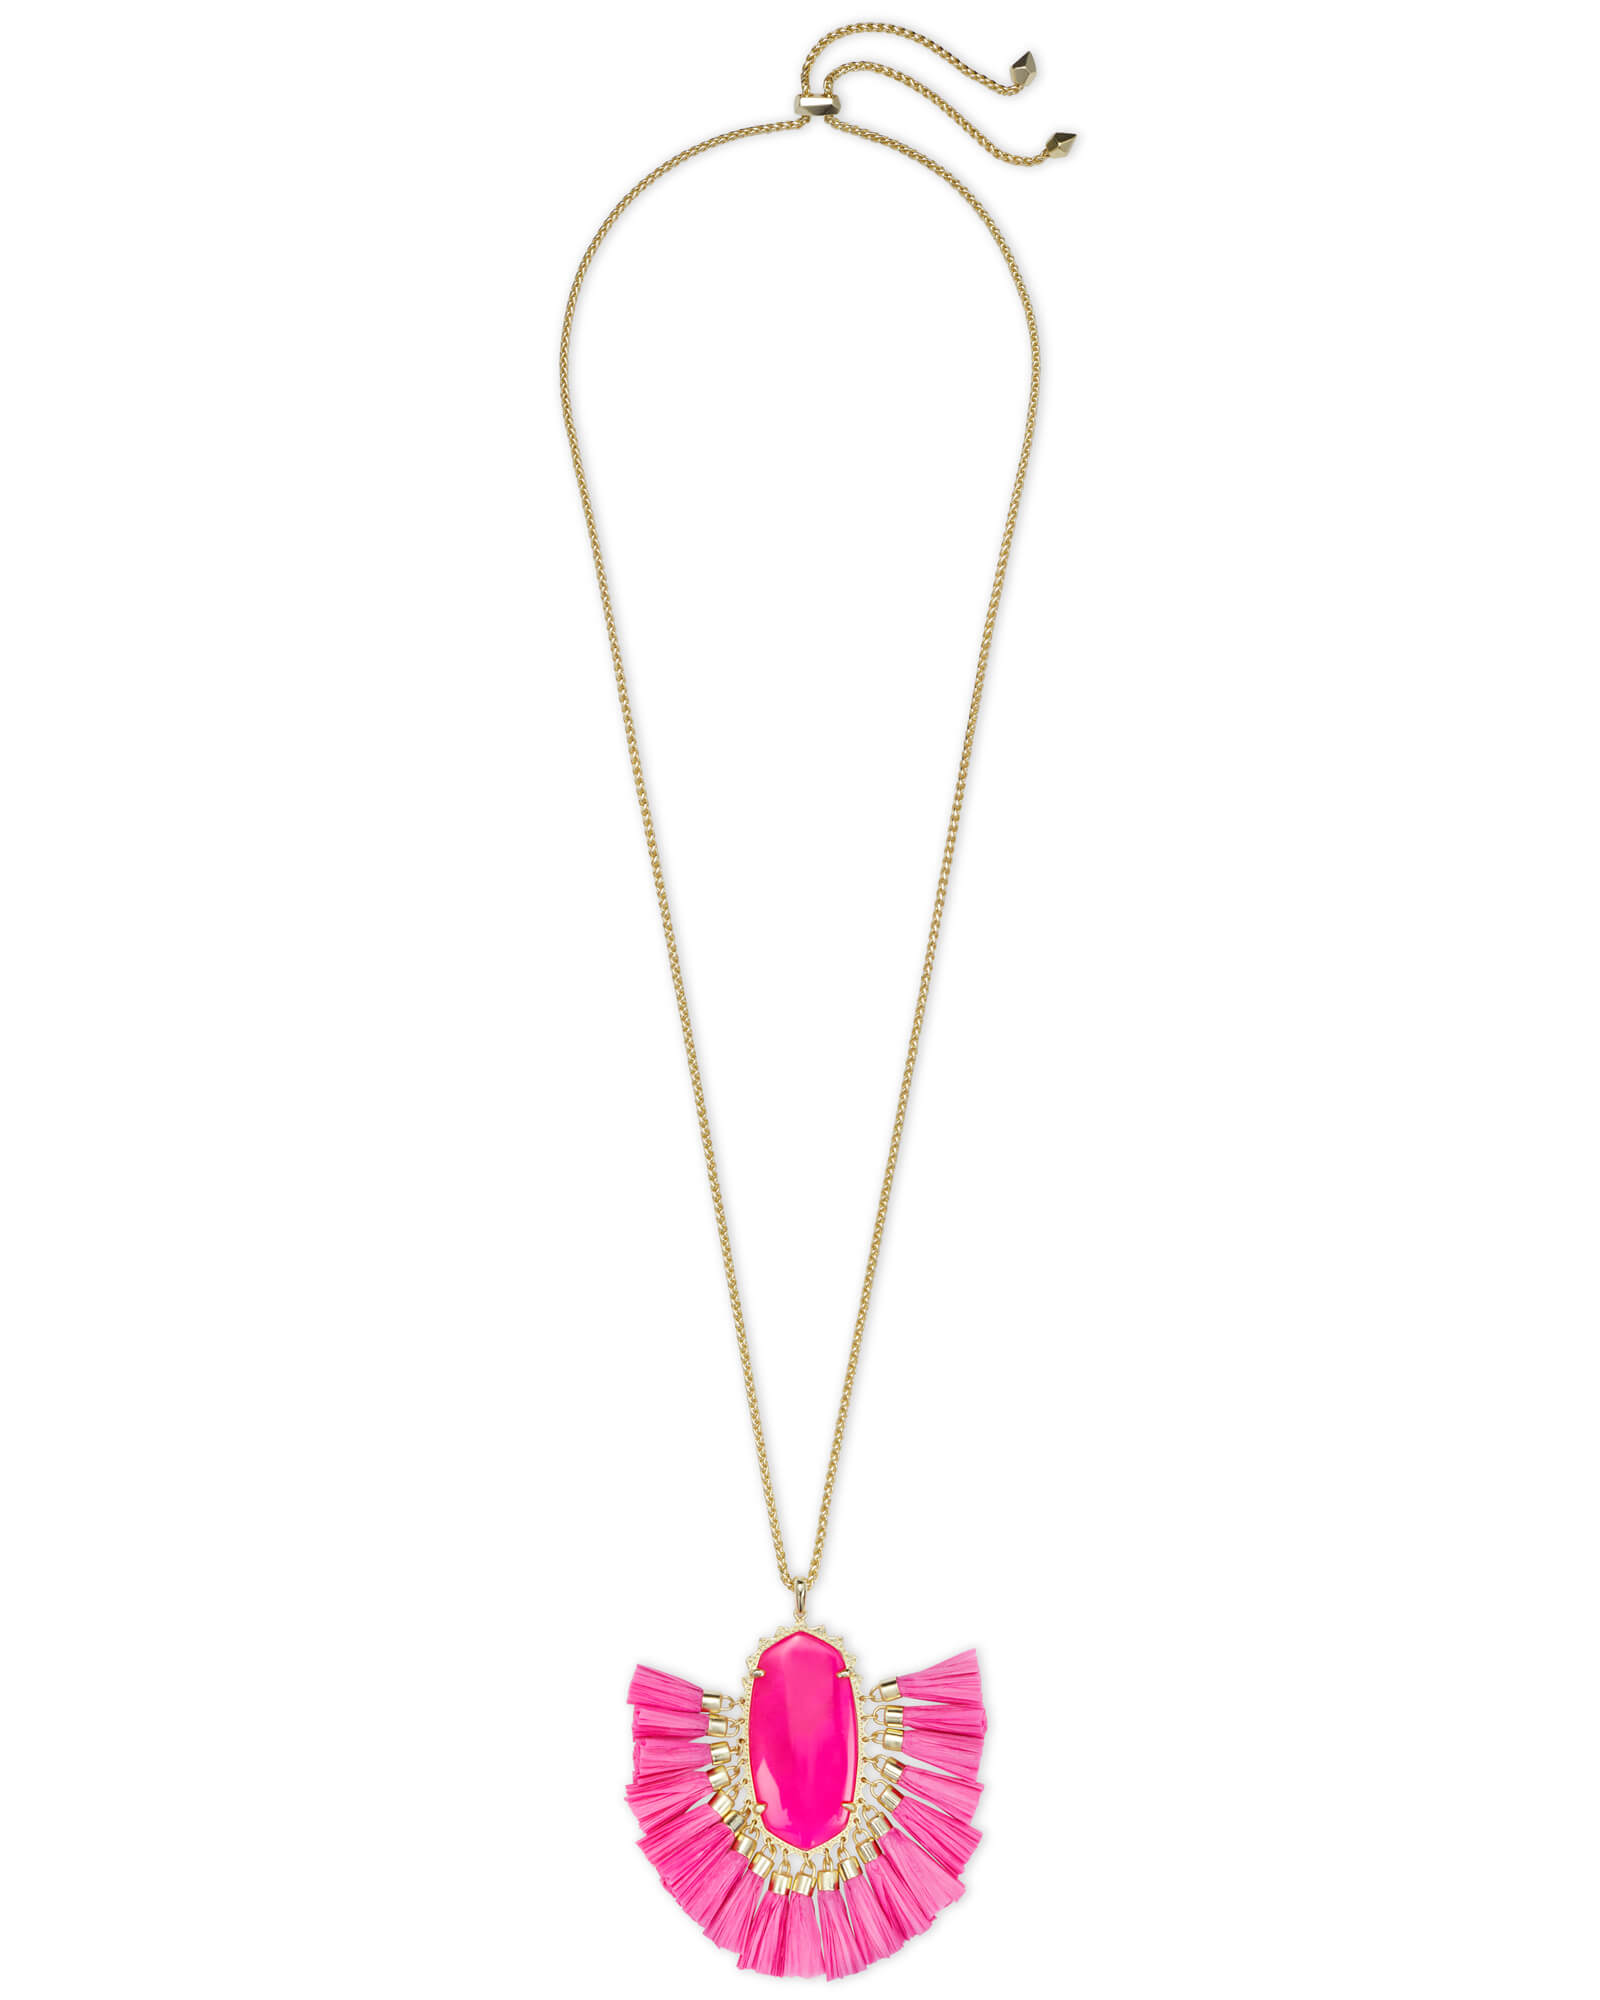 kendra-scott-betsy-gold-long-pendant-necklace-in-pink-agate_01_default_lg.jpg